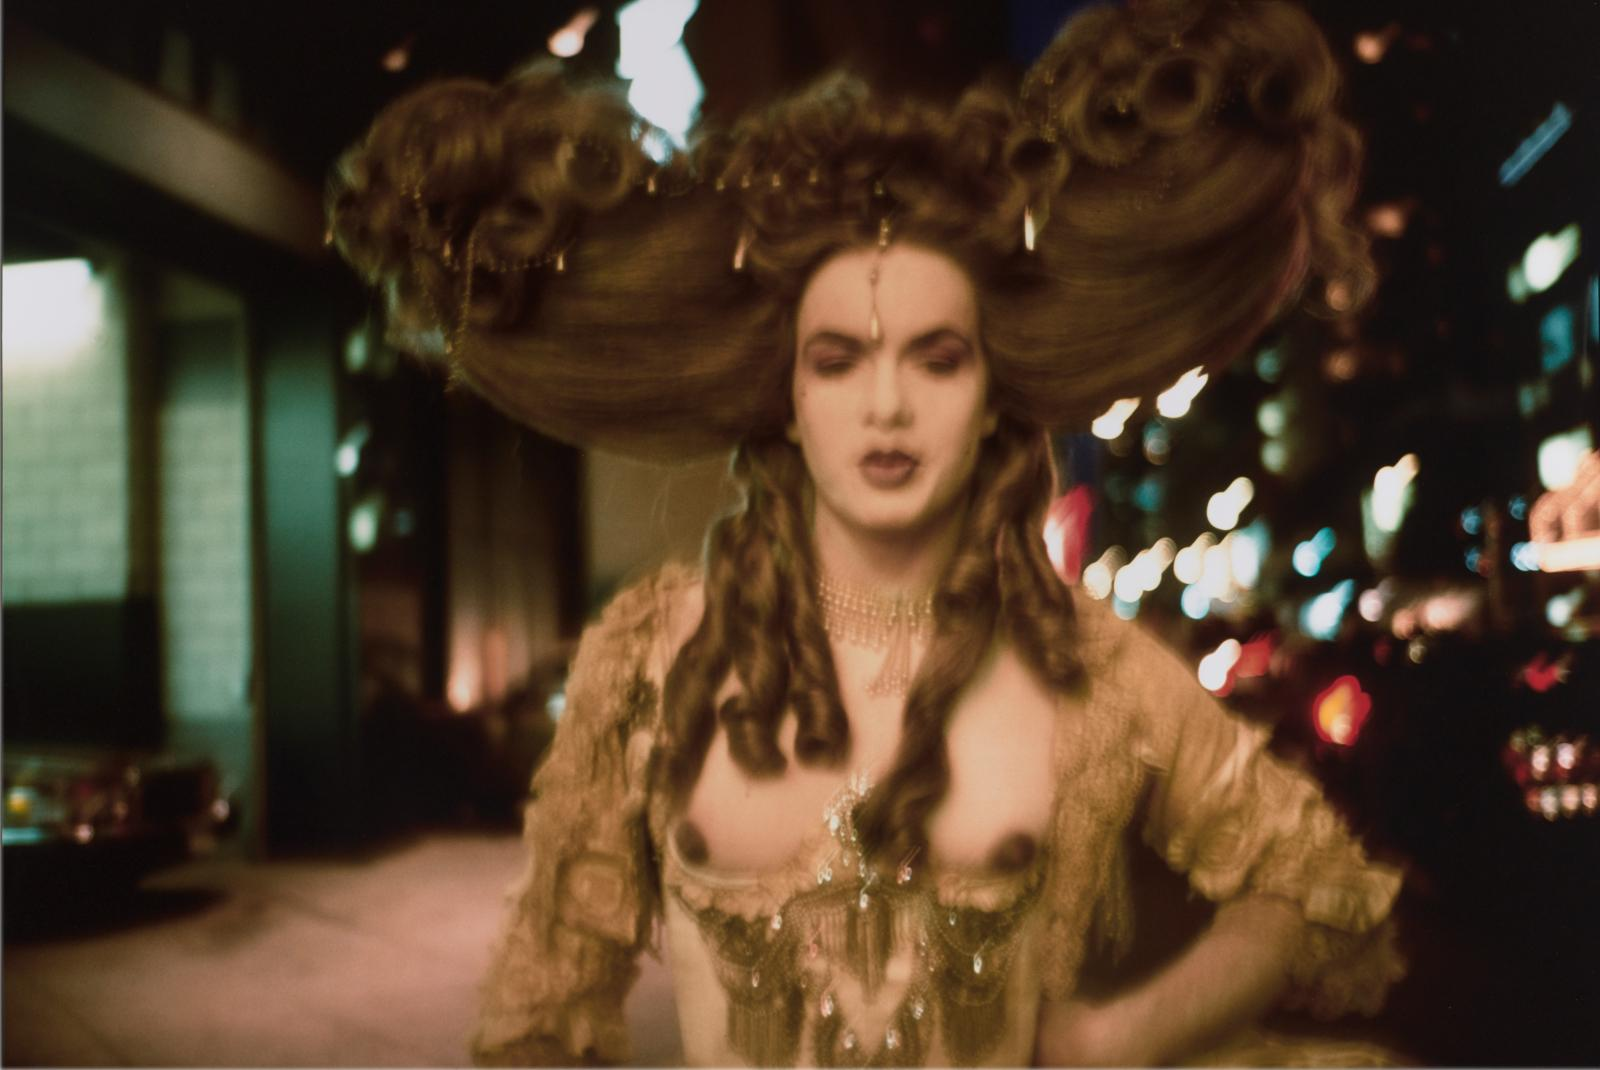 A blurry image shows a light-skinned feminine person with an elaborate updo, corkscrew curls, and a made-up face on a city street at night, posing left hand on hip and wearing a lacy, bejeweled dress with a deep neckline that exposes dark nipples.